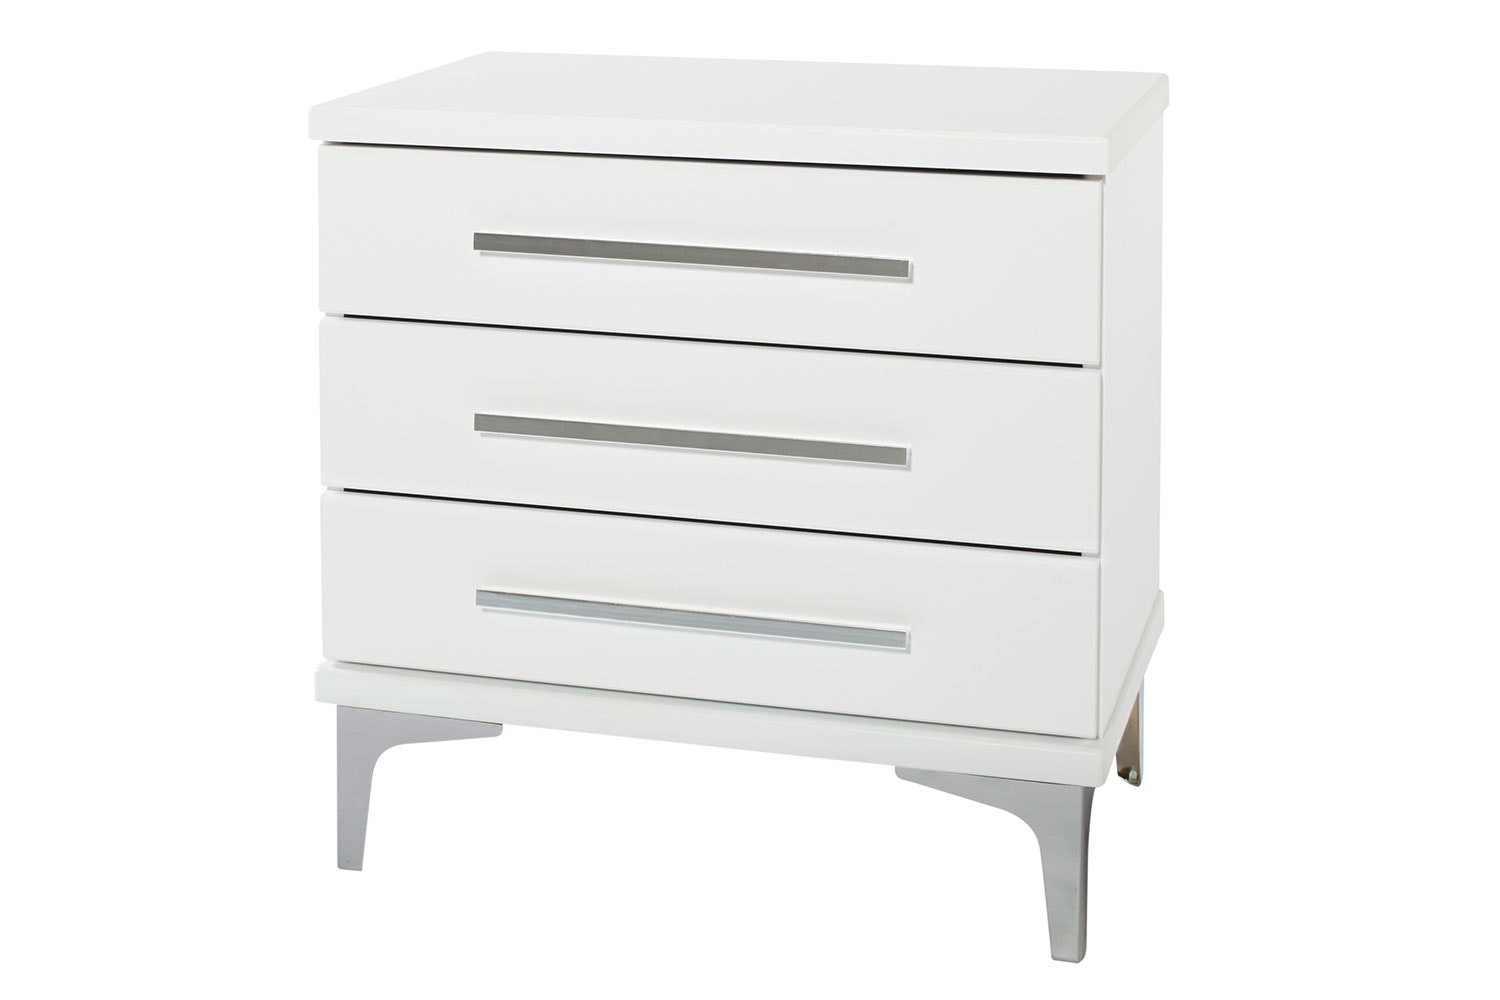 Salento 3 Drawer Bedside Table by Platform 10